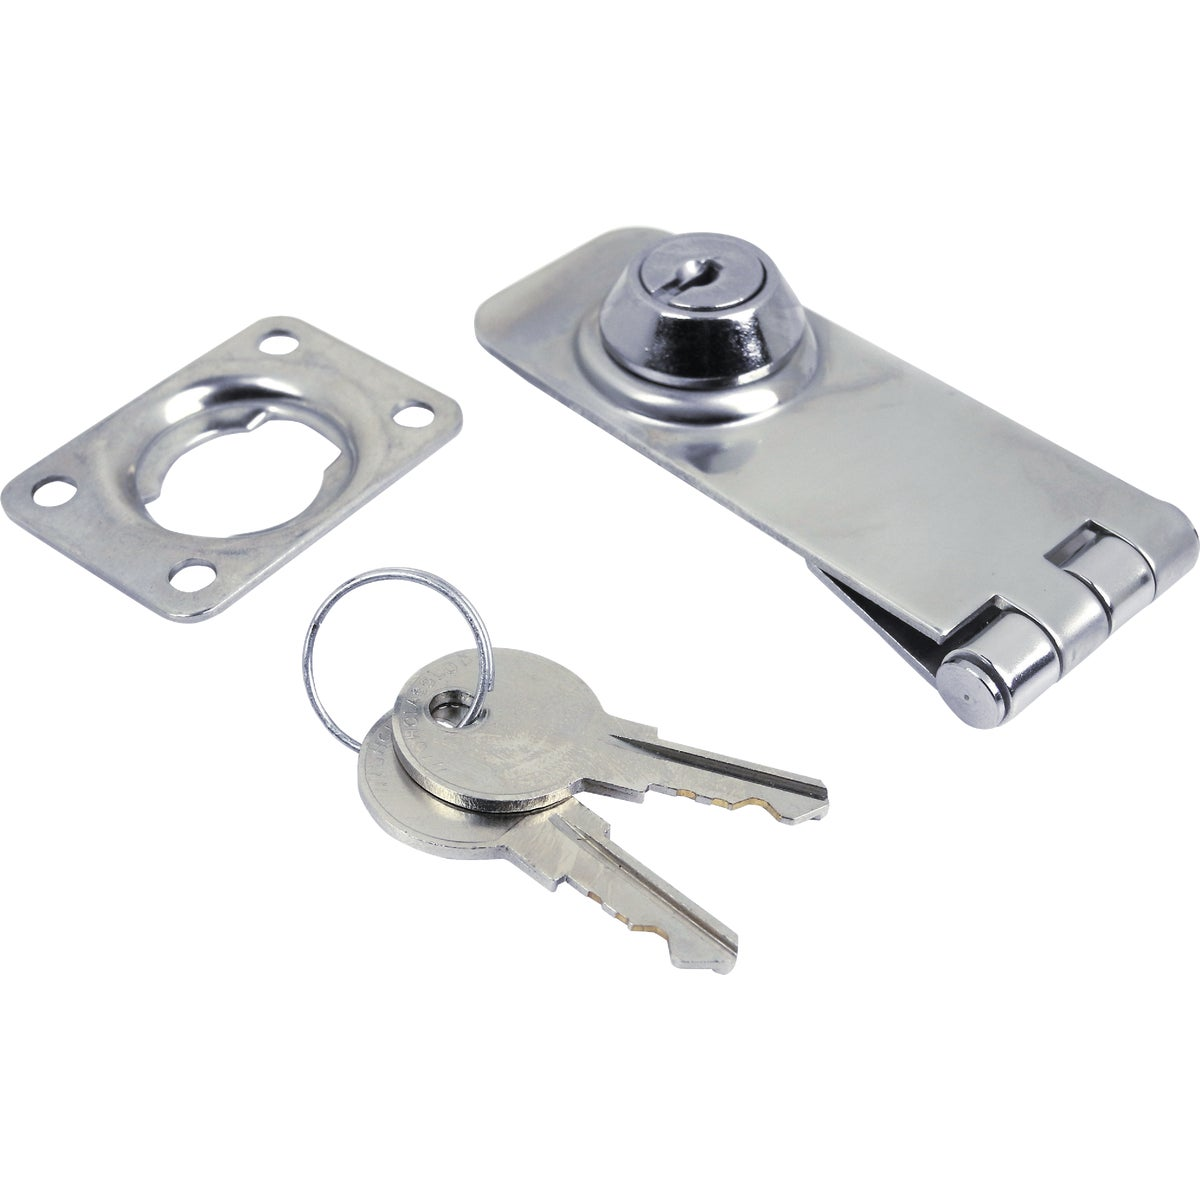 1-1/8X3 SS LOCKABLE HASP